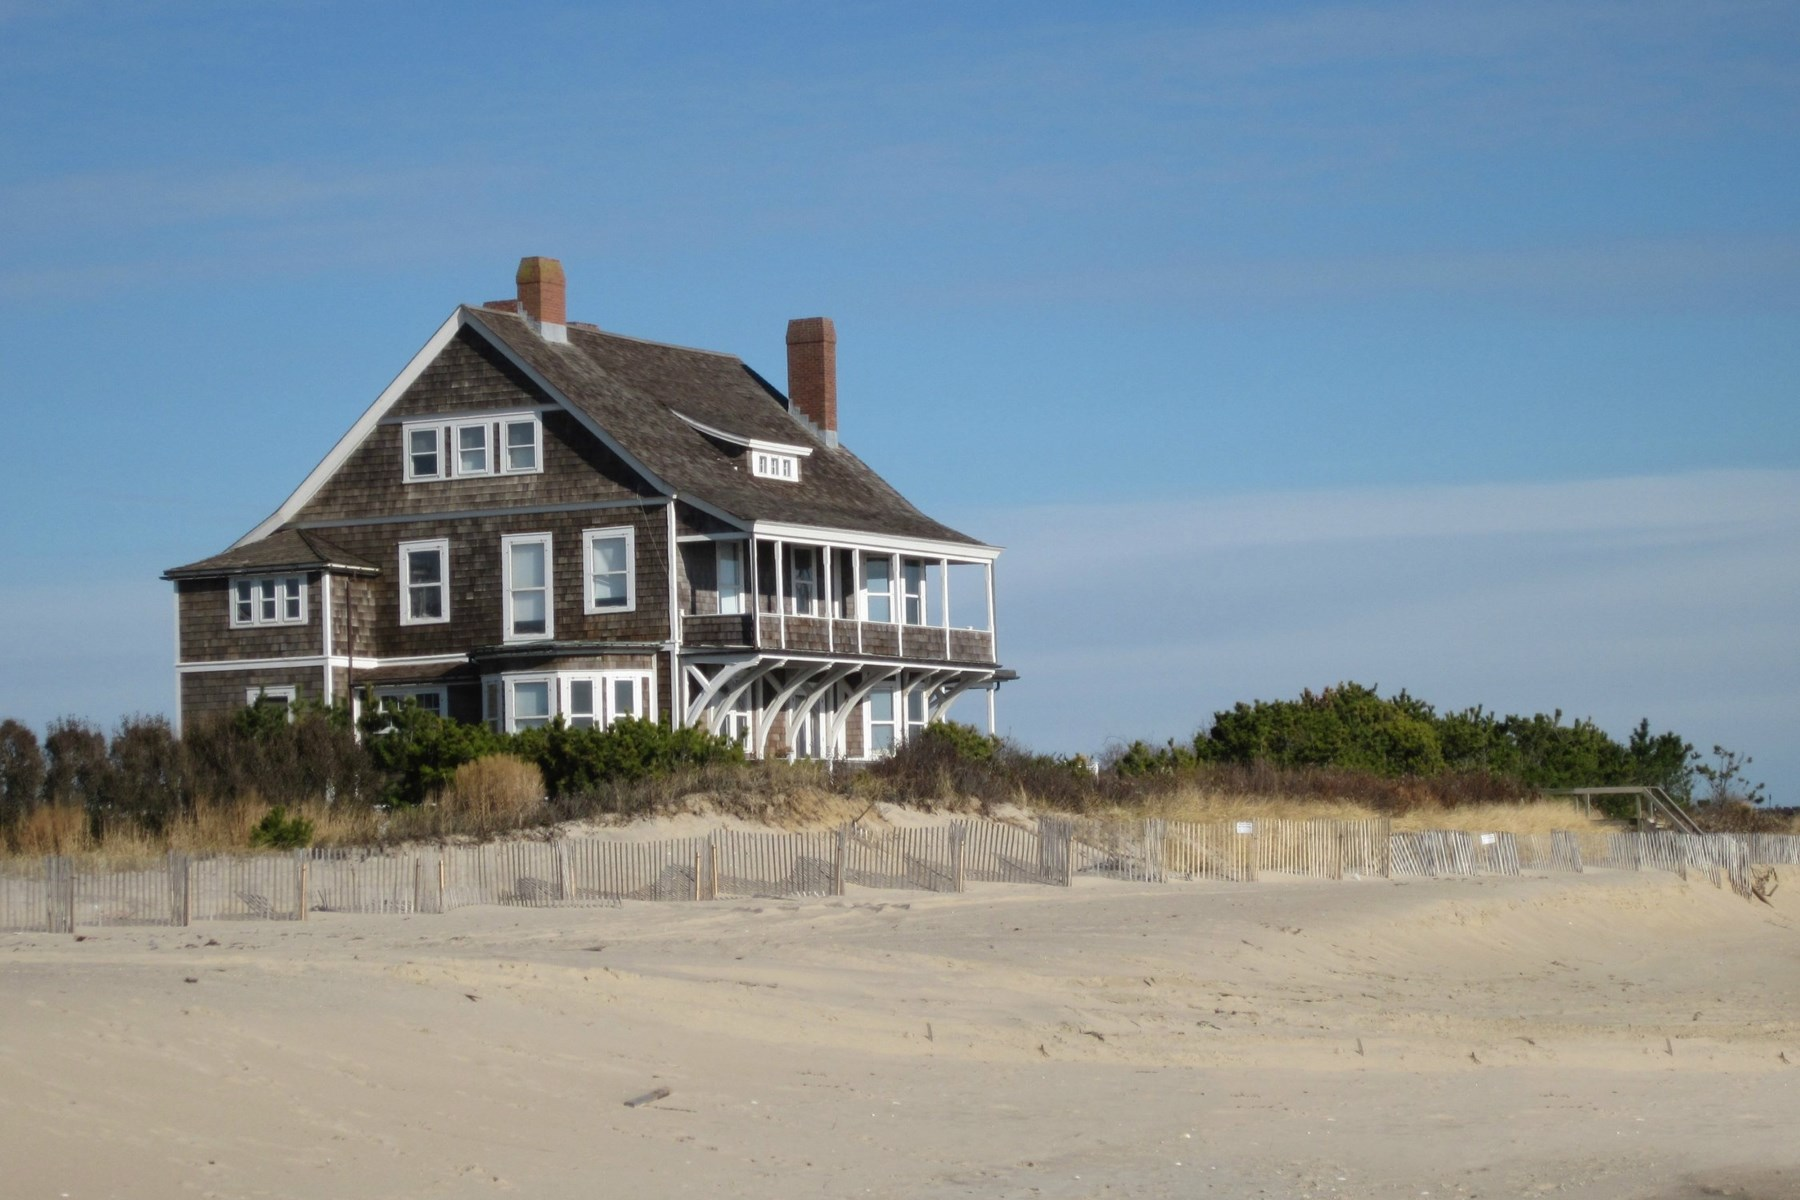 Single Family Home for Rent at Georgica Association Oceanfront Wainscott, New York 11975 United States